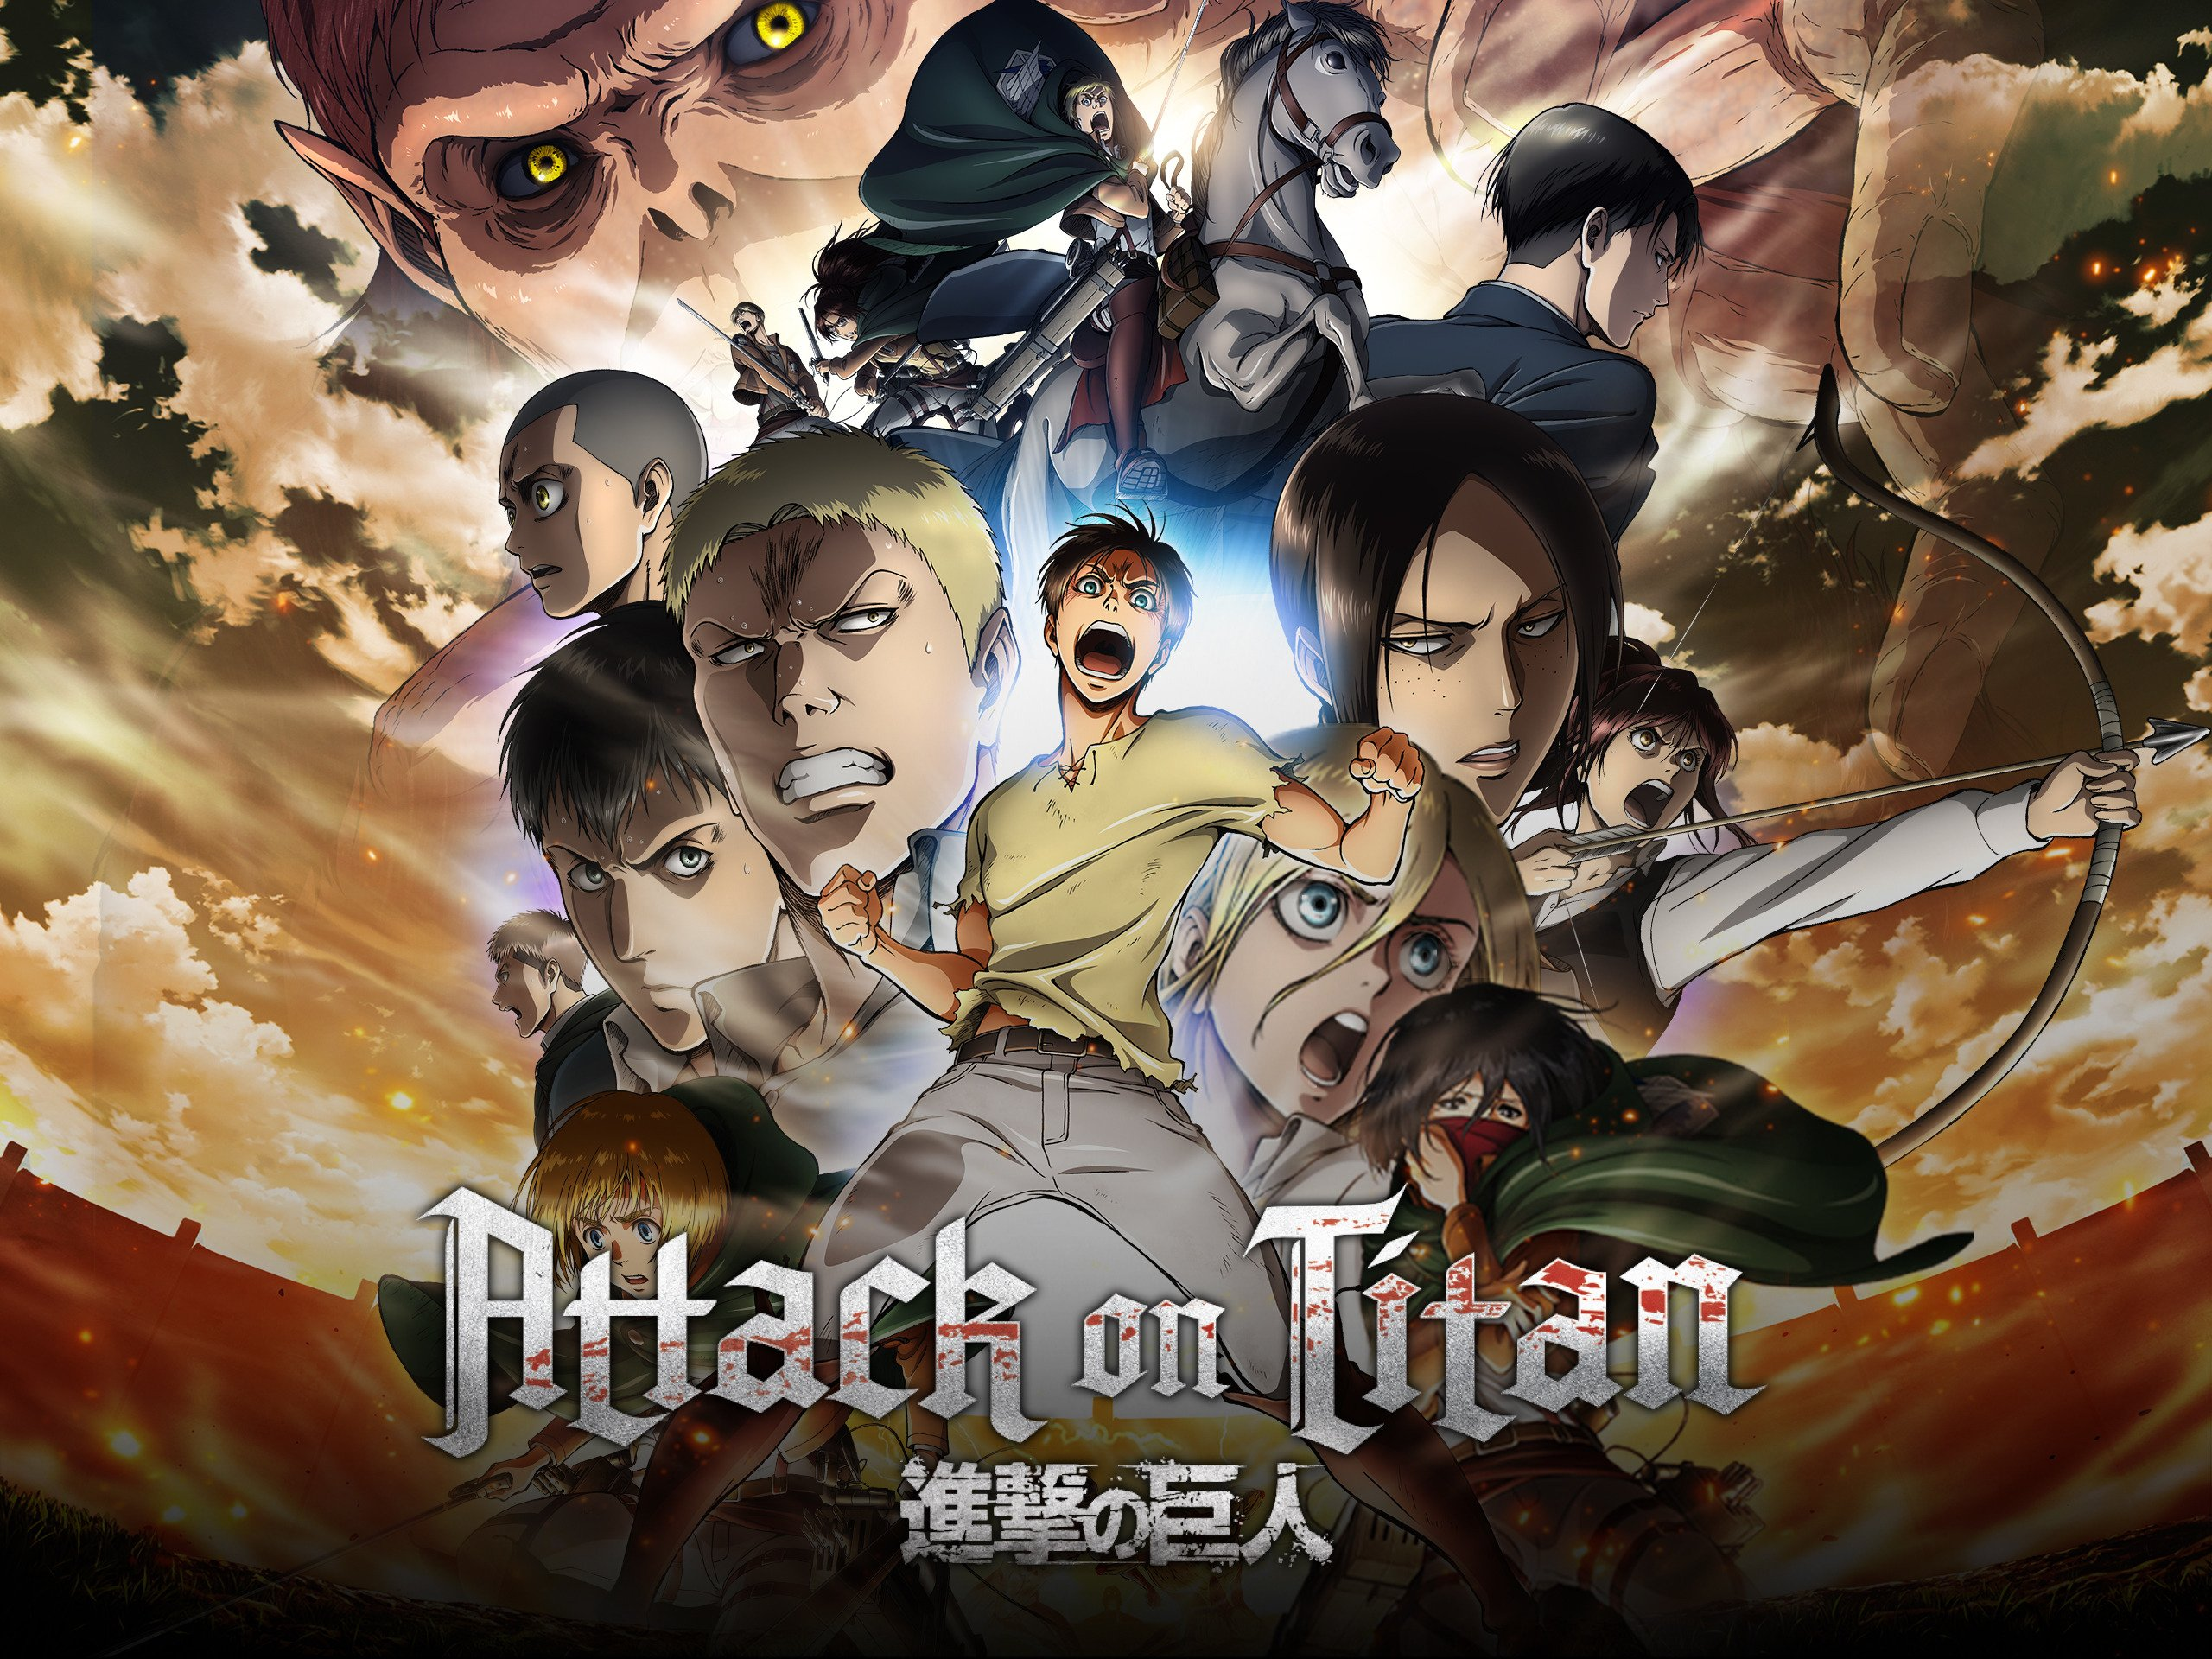 'Attack on Titan' Chapter 117 release date and spoilers: Eren uses the War Hammer